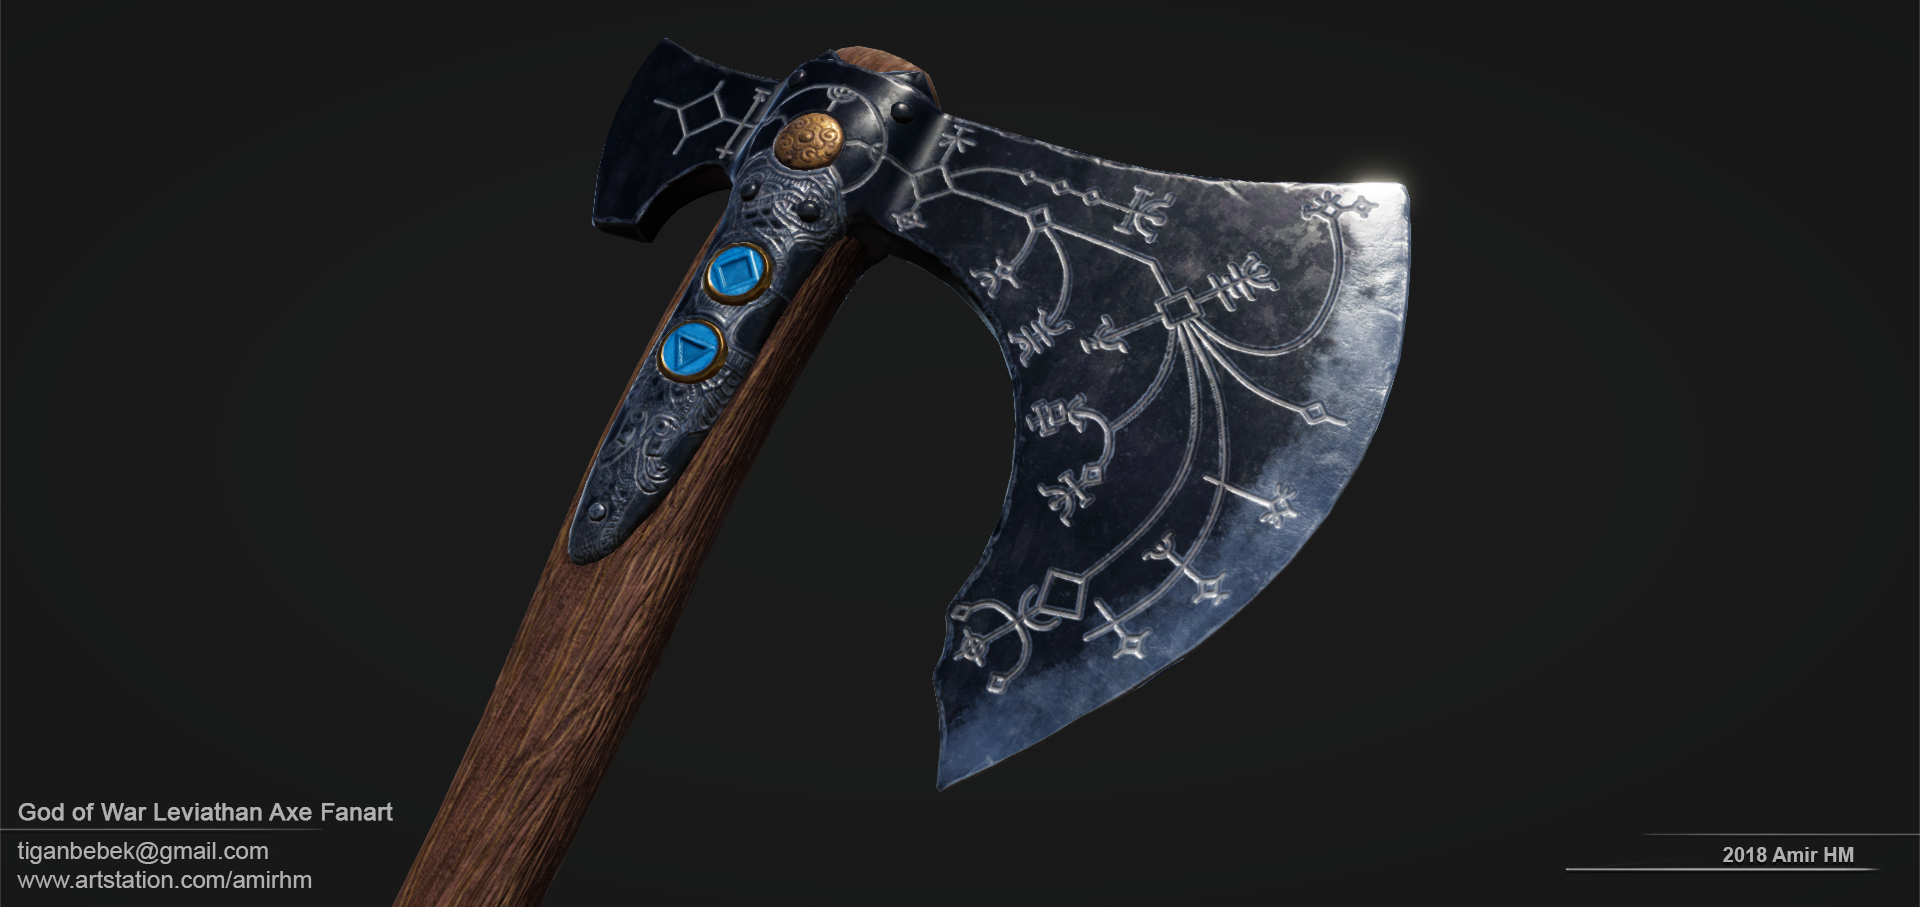 Fanart of GOW Leviathan Axe